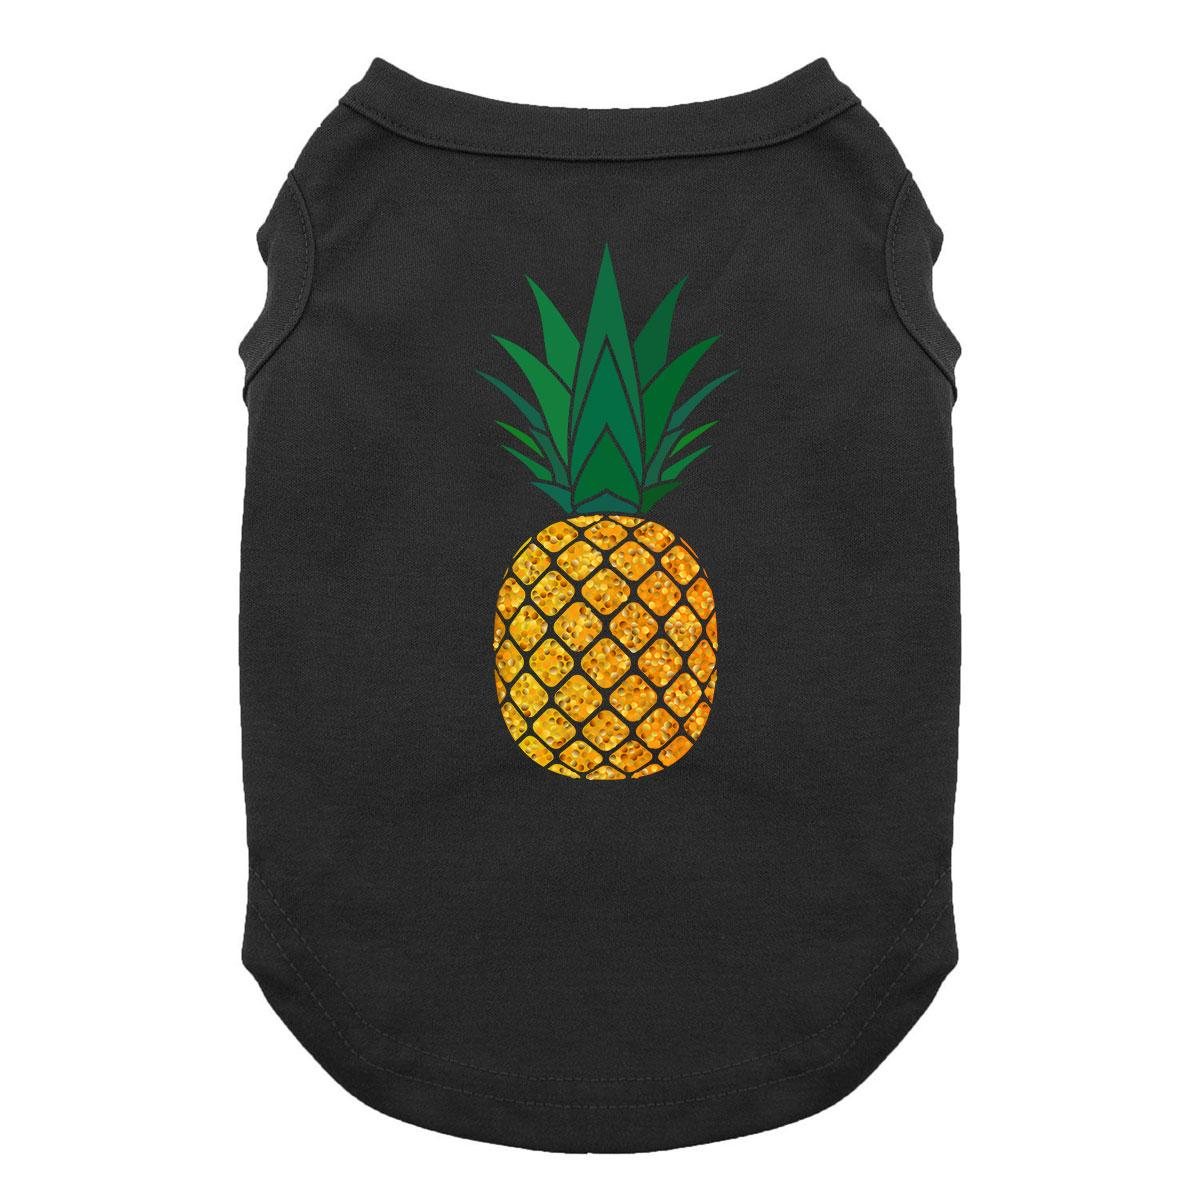 Glitter Pineapple Dog Shirt - Black